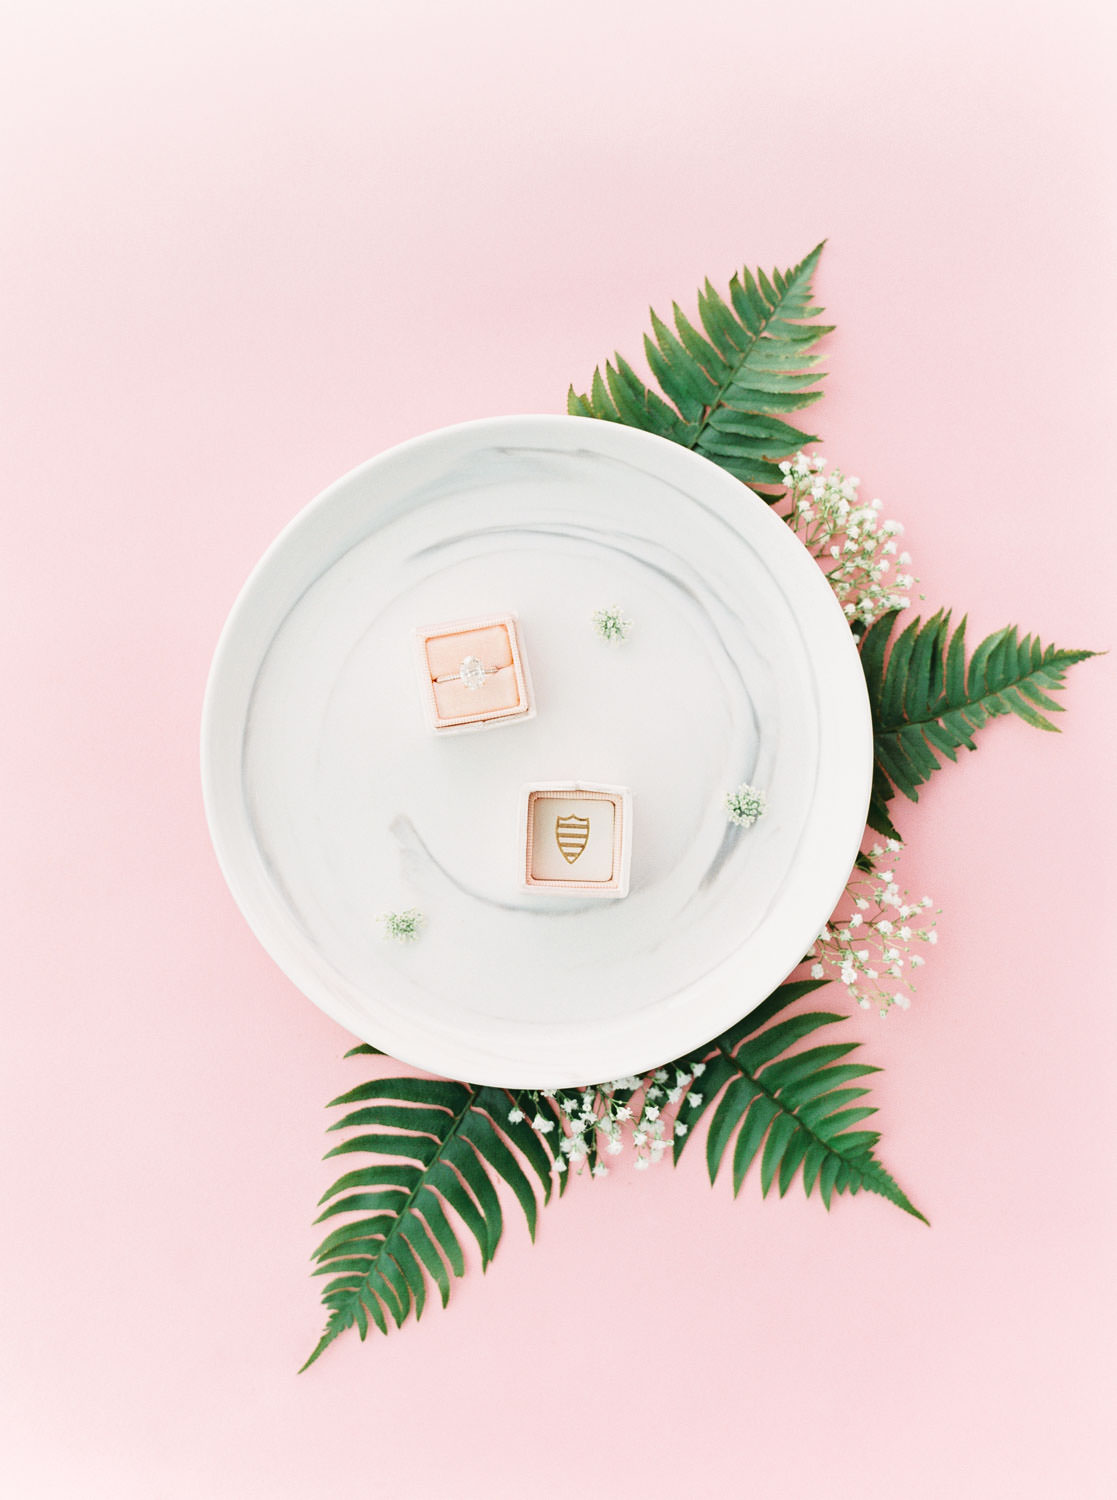 Pink velvet Mrs Box ring box with Jean Dousset Chelsea ring on a marble plate, Pink backdrop wedding editorial on medium format Contax 645 Fuji 400h film by Cavin Elizabeth Photography